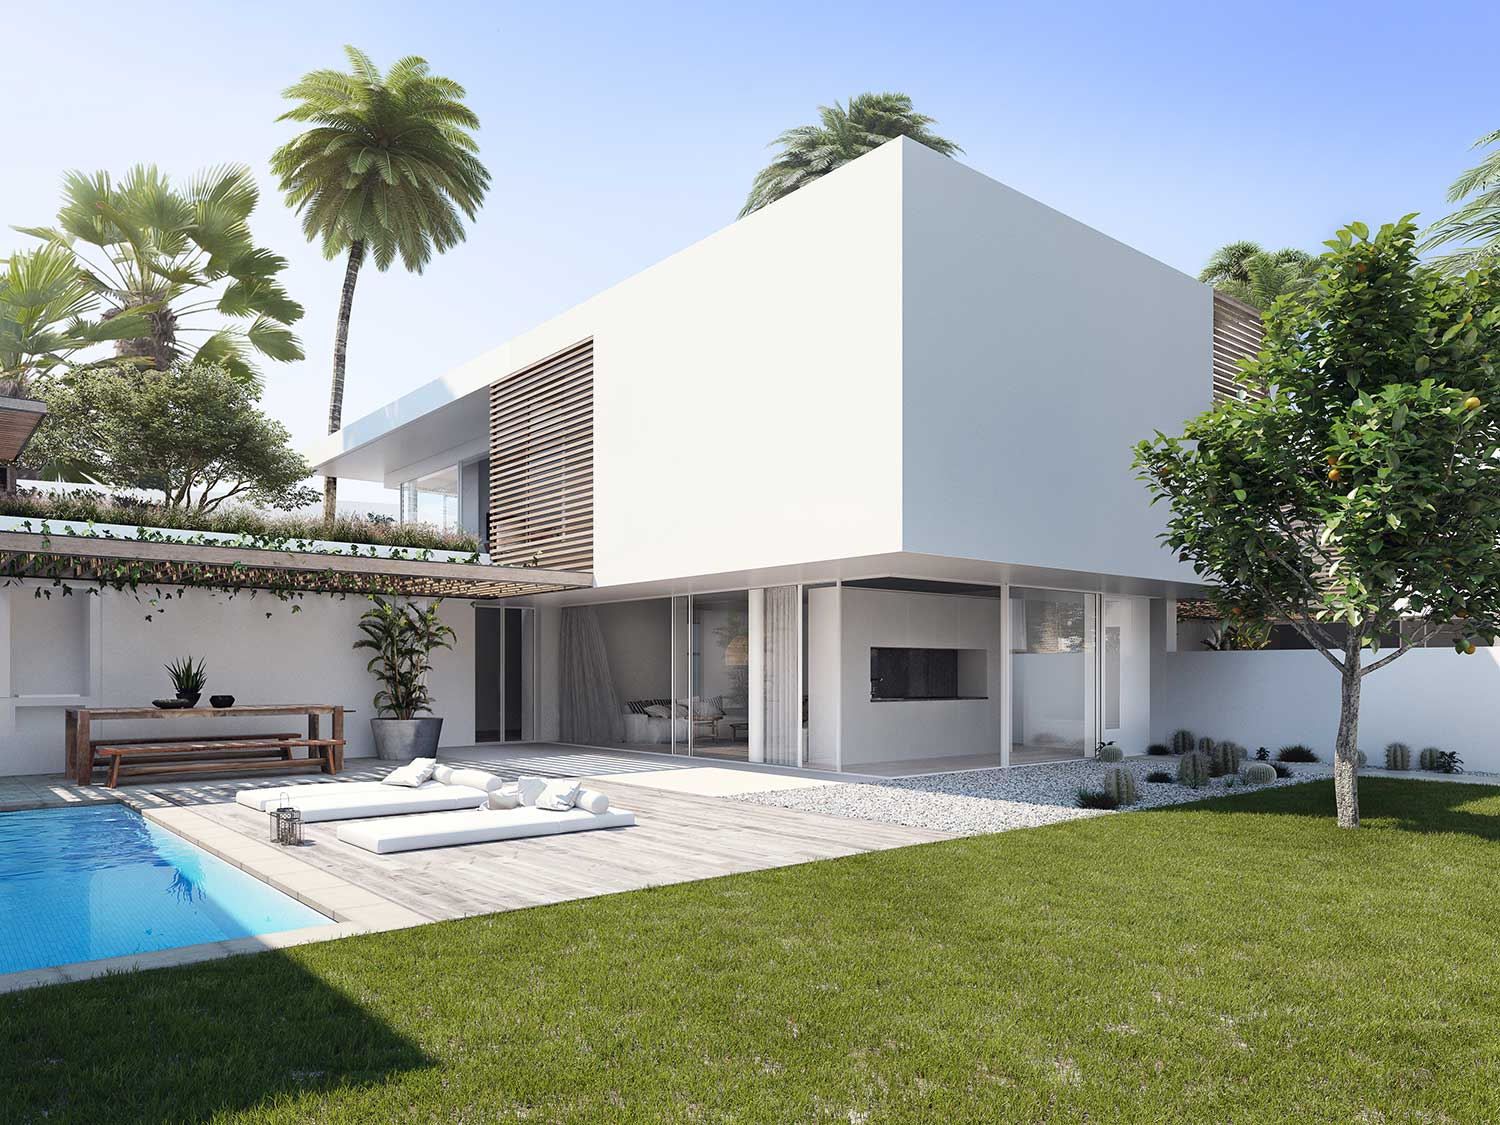 Design & architectural visualisation Lemon Tree